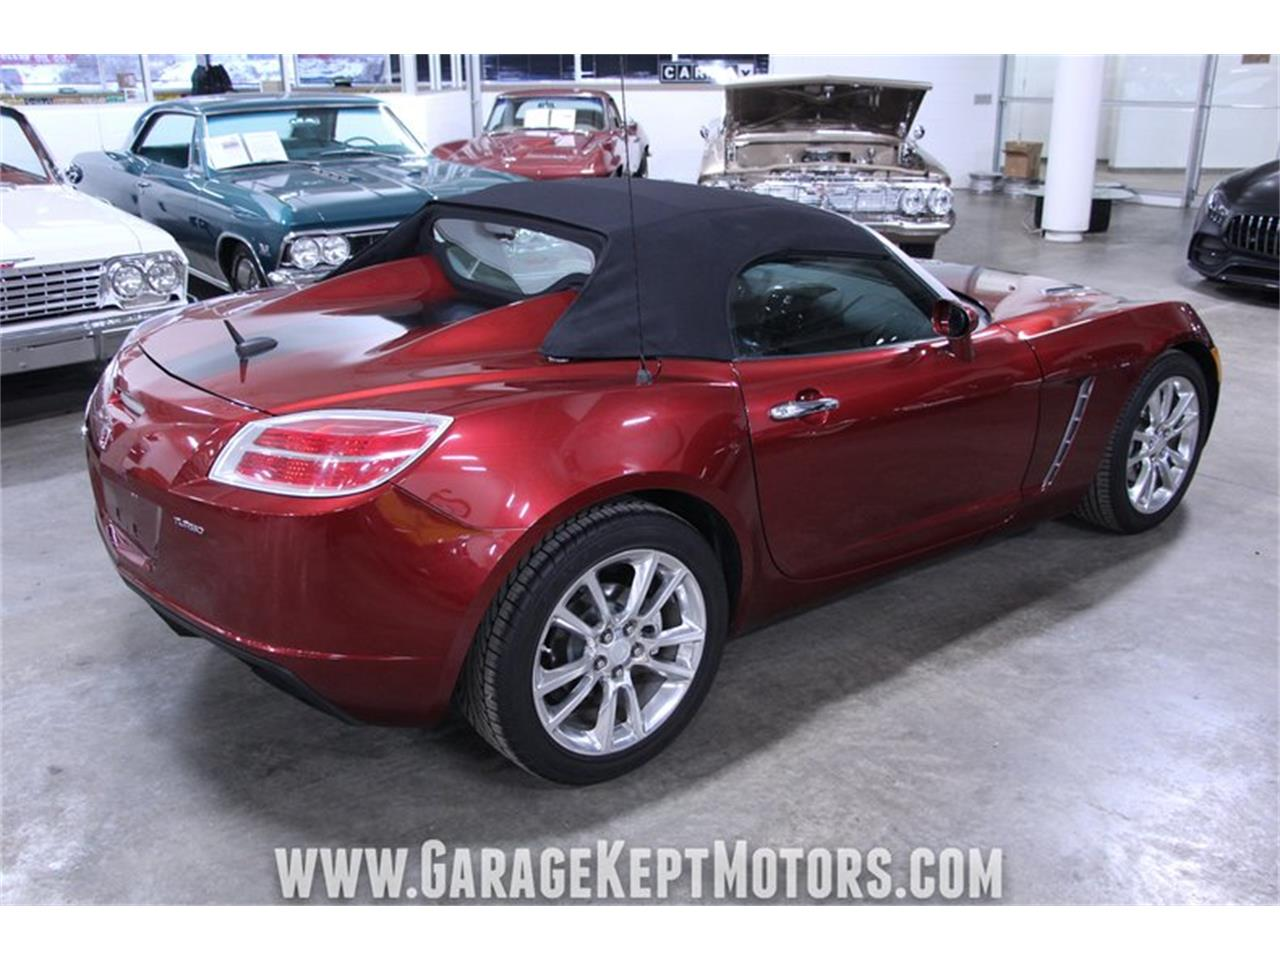 2009 Saturn Sky for sale in Grand Rapids, MI – photo 7